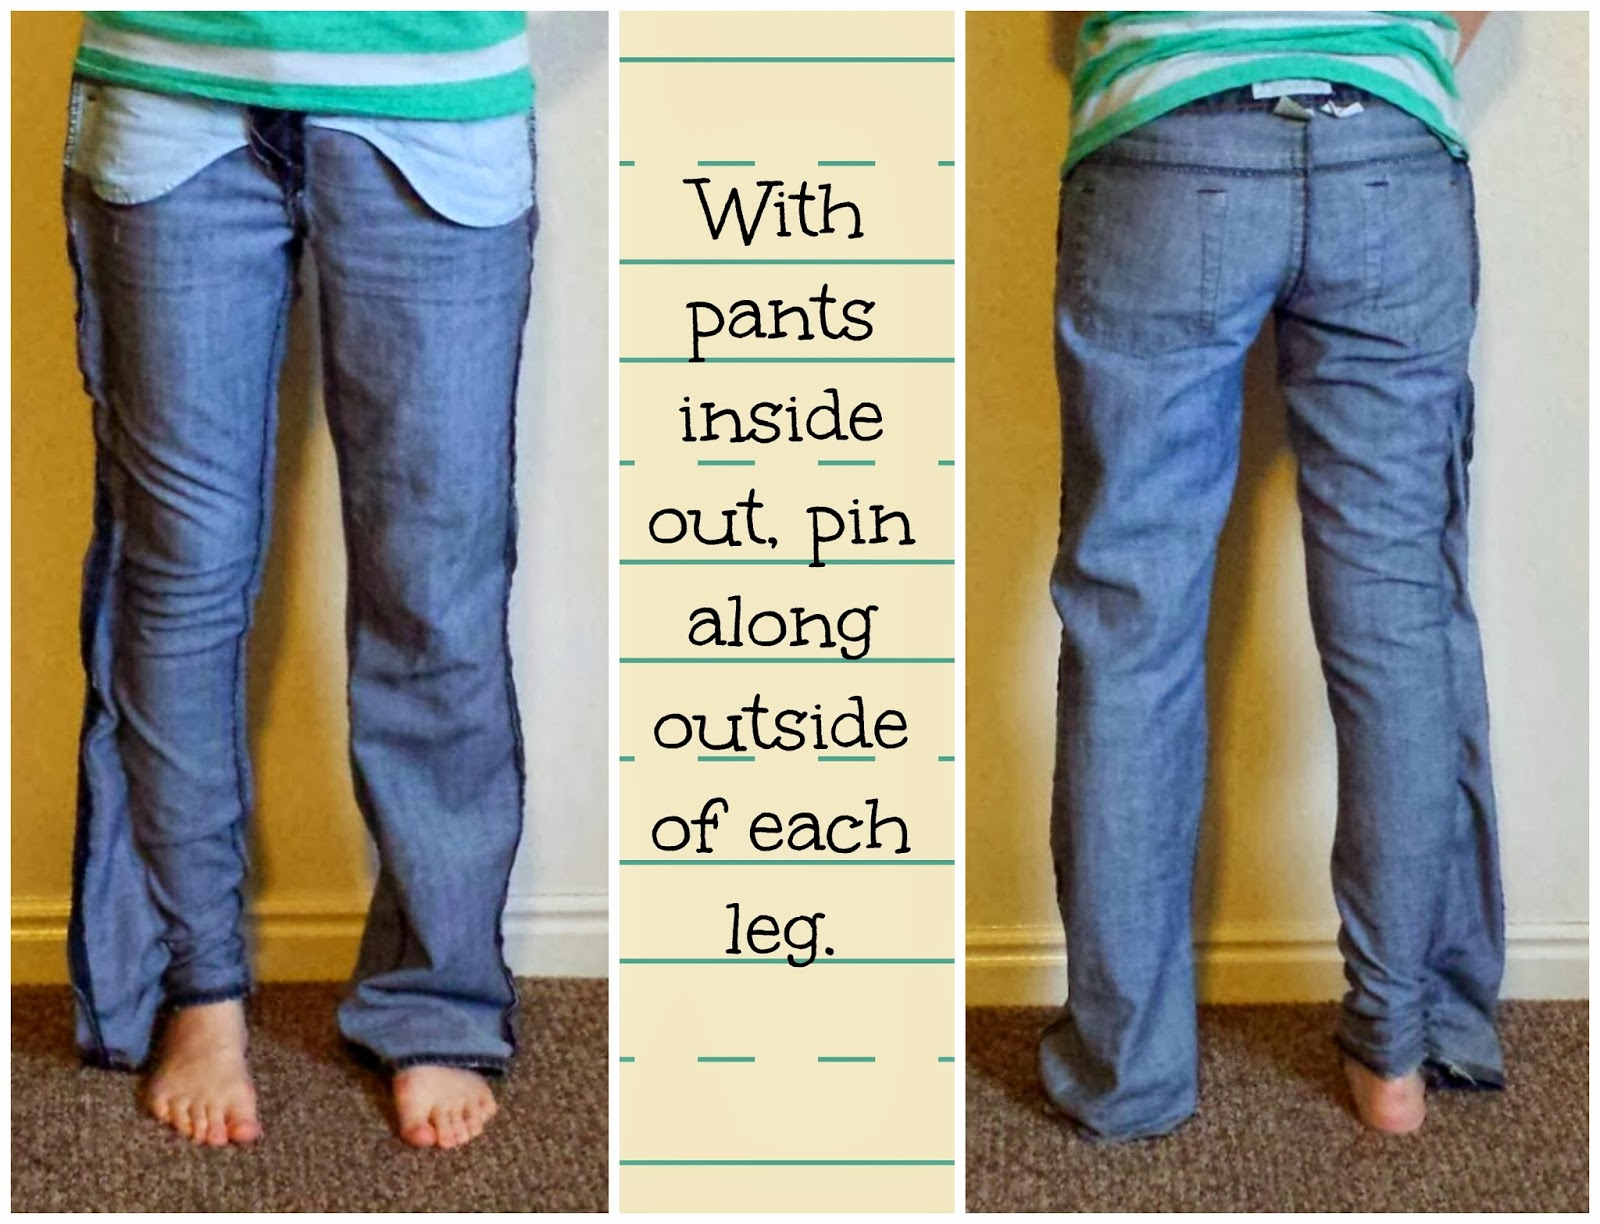 skinny jean refashion, flare to skinny jeans, diy skinny jeans, pants refashion